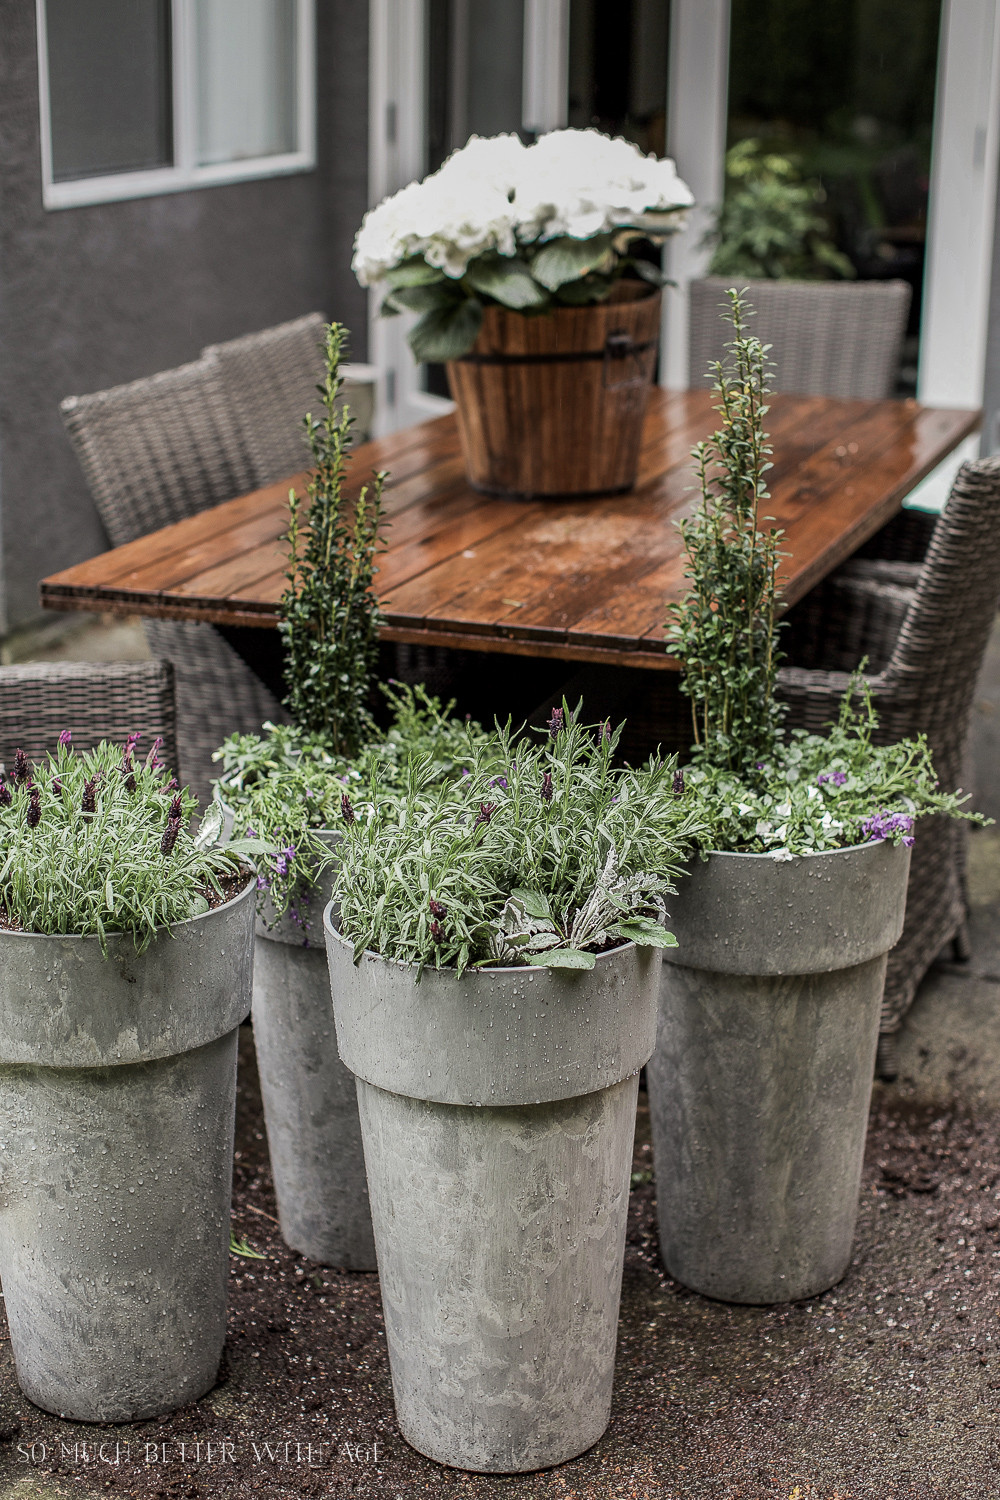 Best ideas about Large Outdoor Planters . Save or Pin The Best Tip for Filling Outdoor Planters Now.